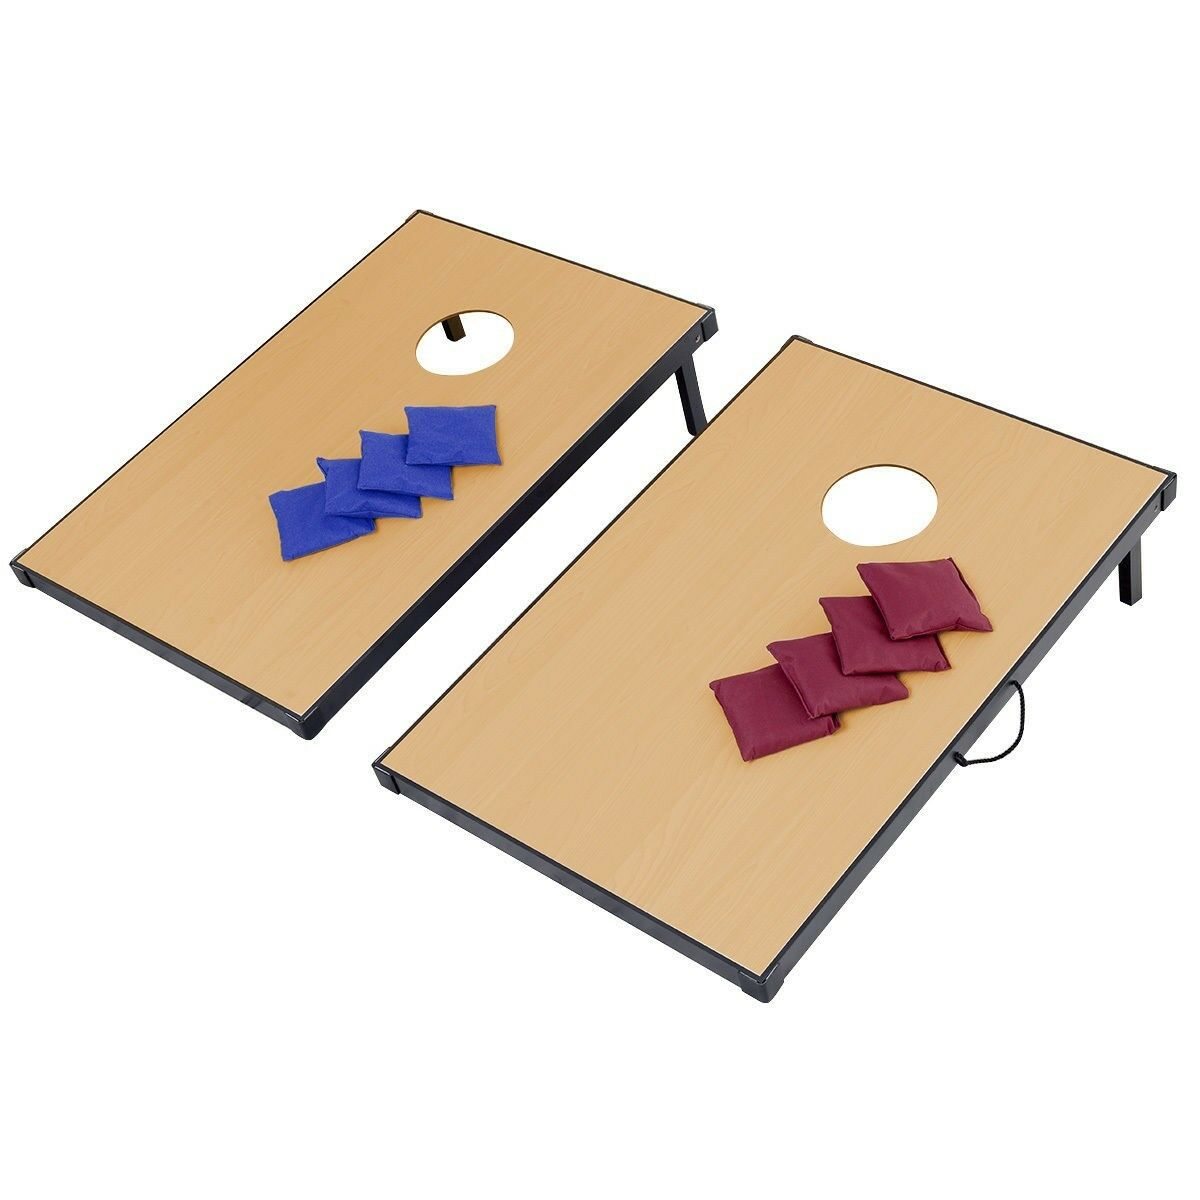 47  New Foldable Wood Bean Bag Toss Cornhole Game Set of 2 Boards and 8 Beanbags